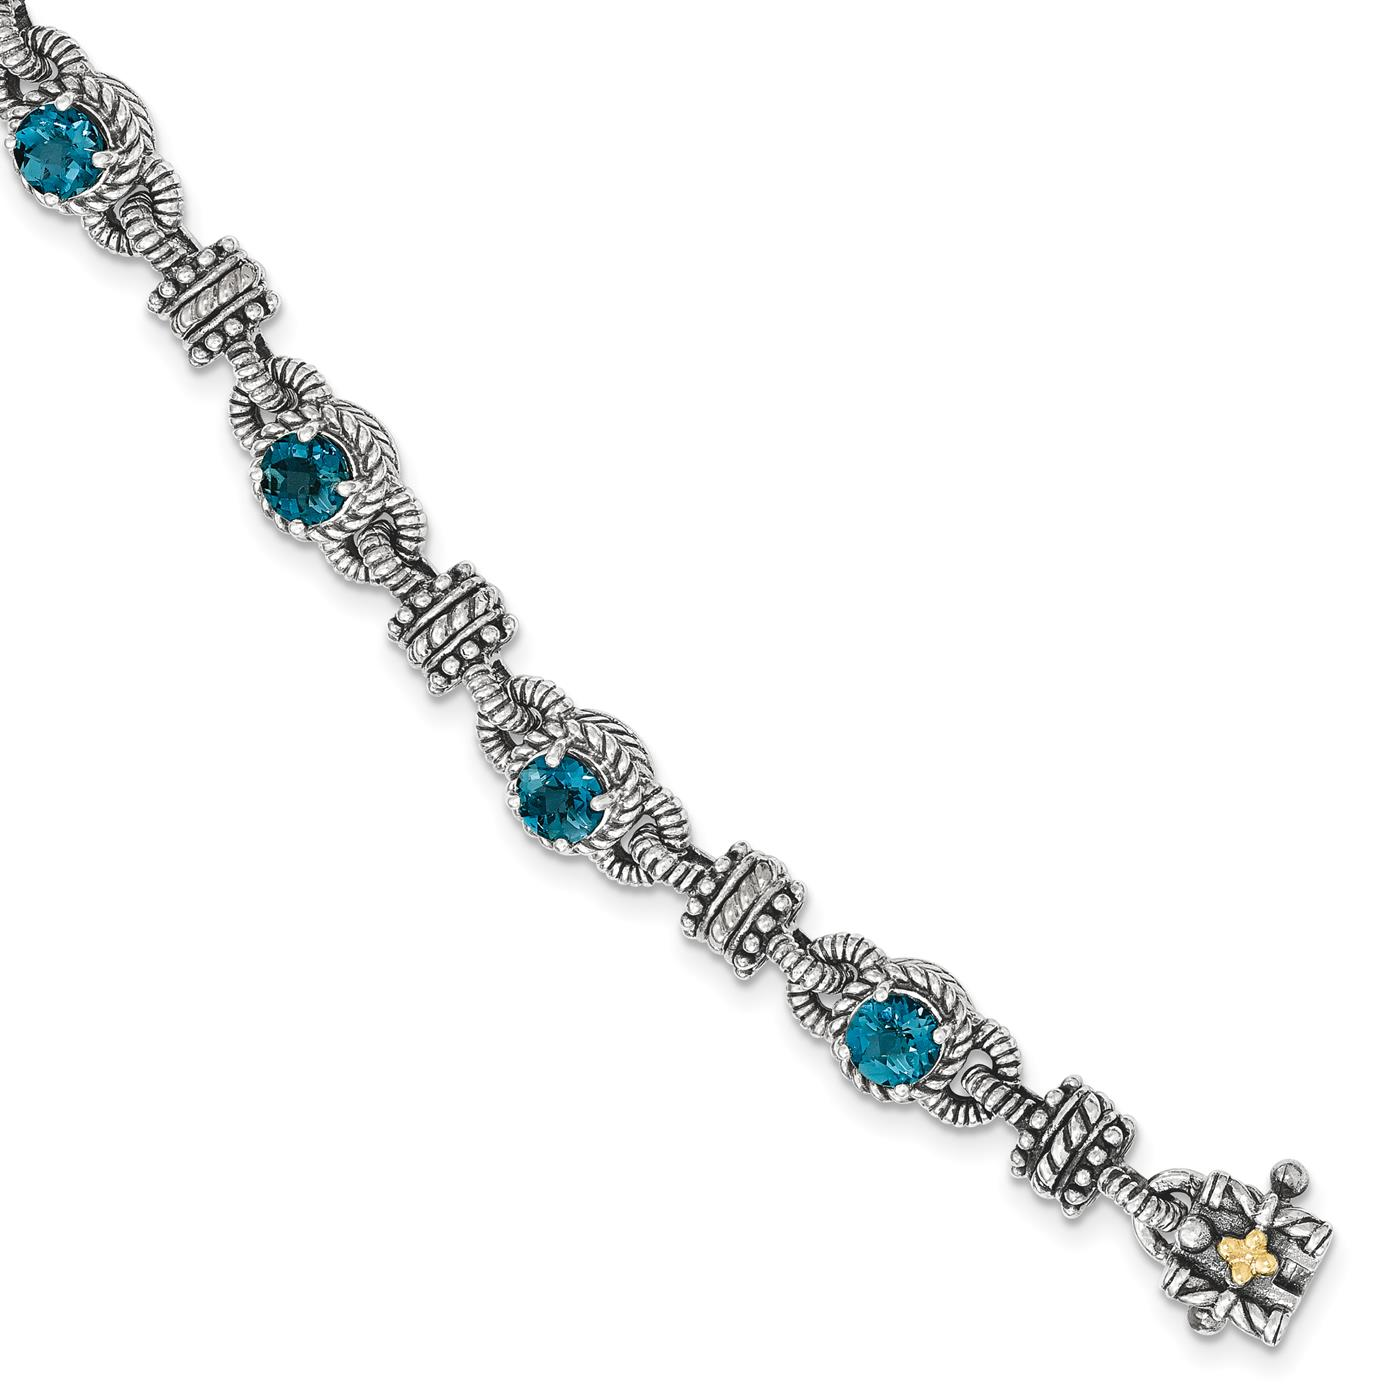 "Shey Couture 925 Sterling Silver w 14k London Blue Topaz Bracelet 7.5"" by Fusion Collections"